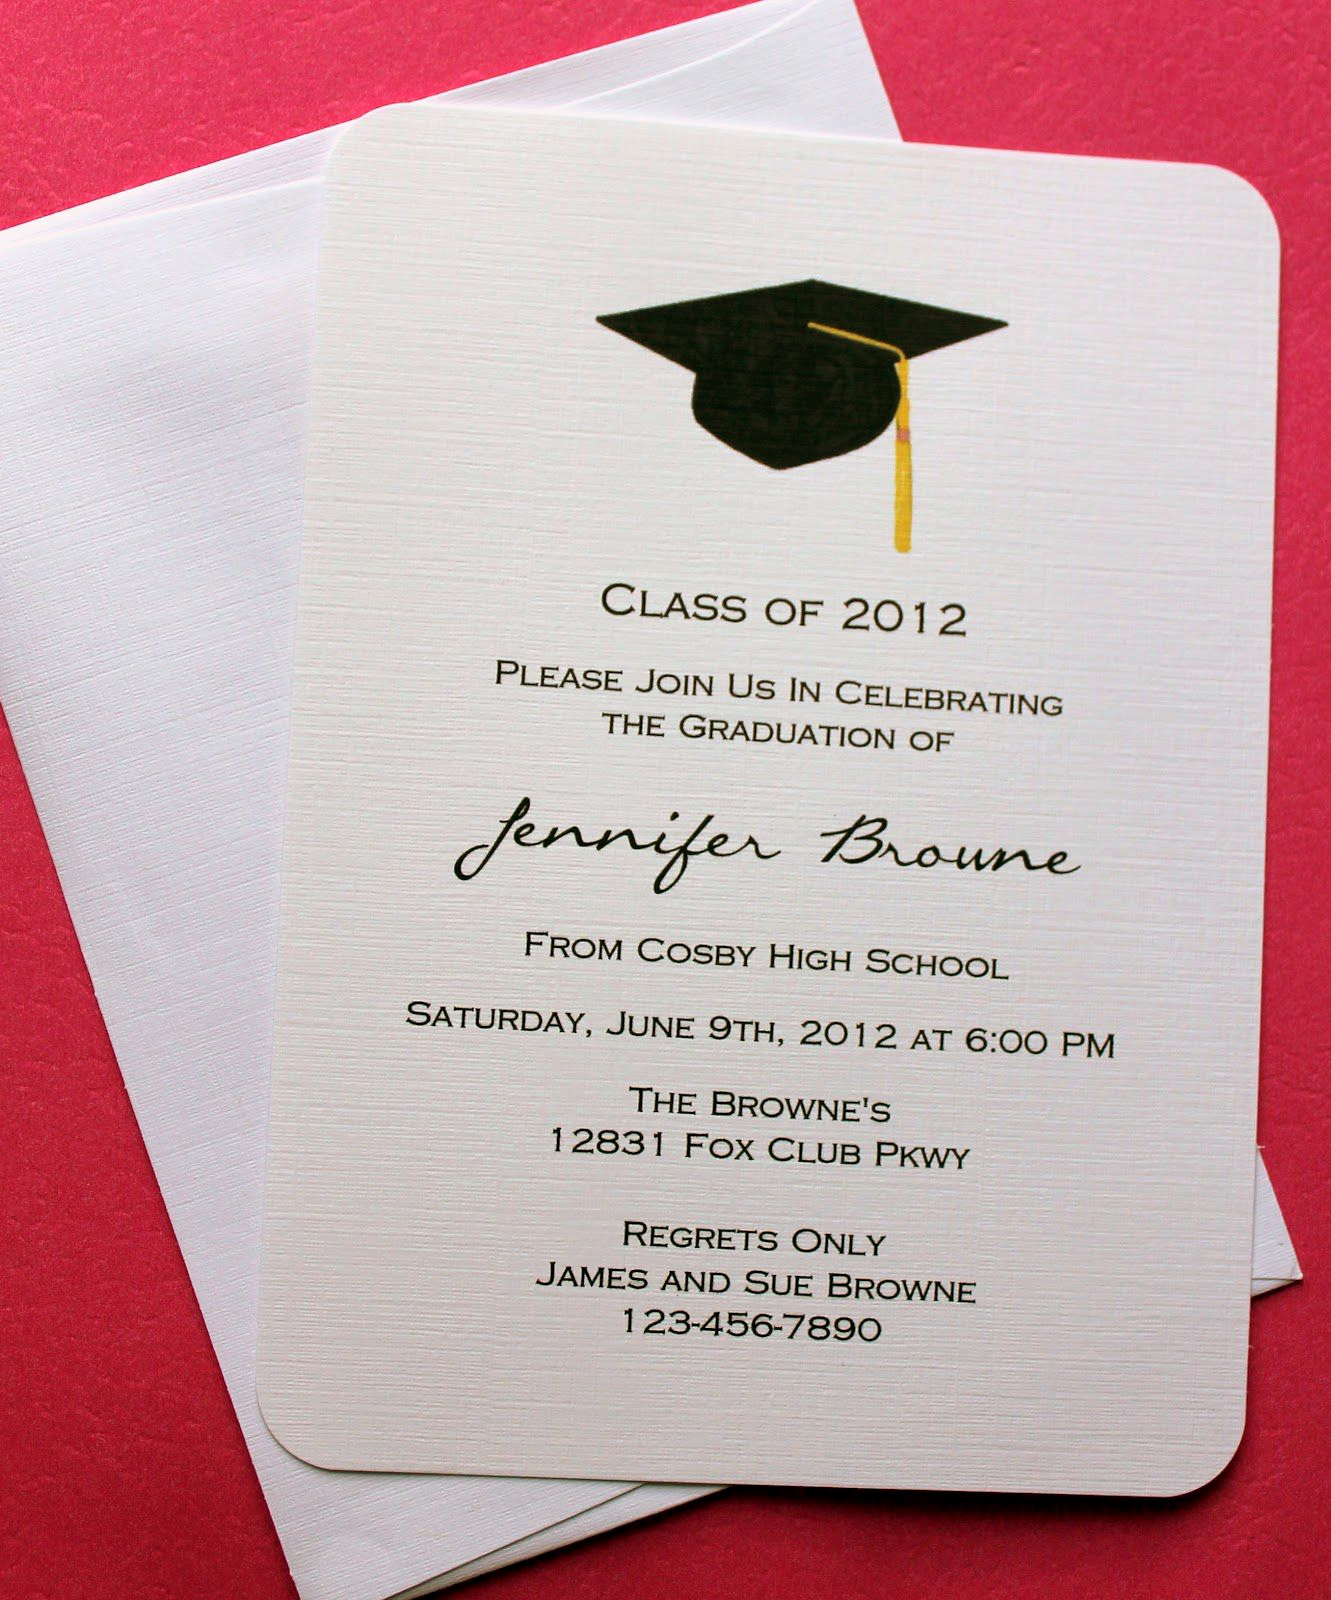 Graduation Party Invitation Template Free Luxury Graduation Invitation Template Graduation Invitation